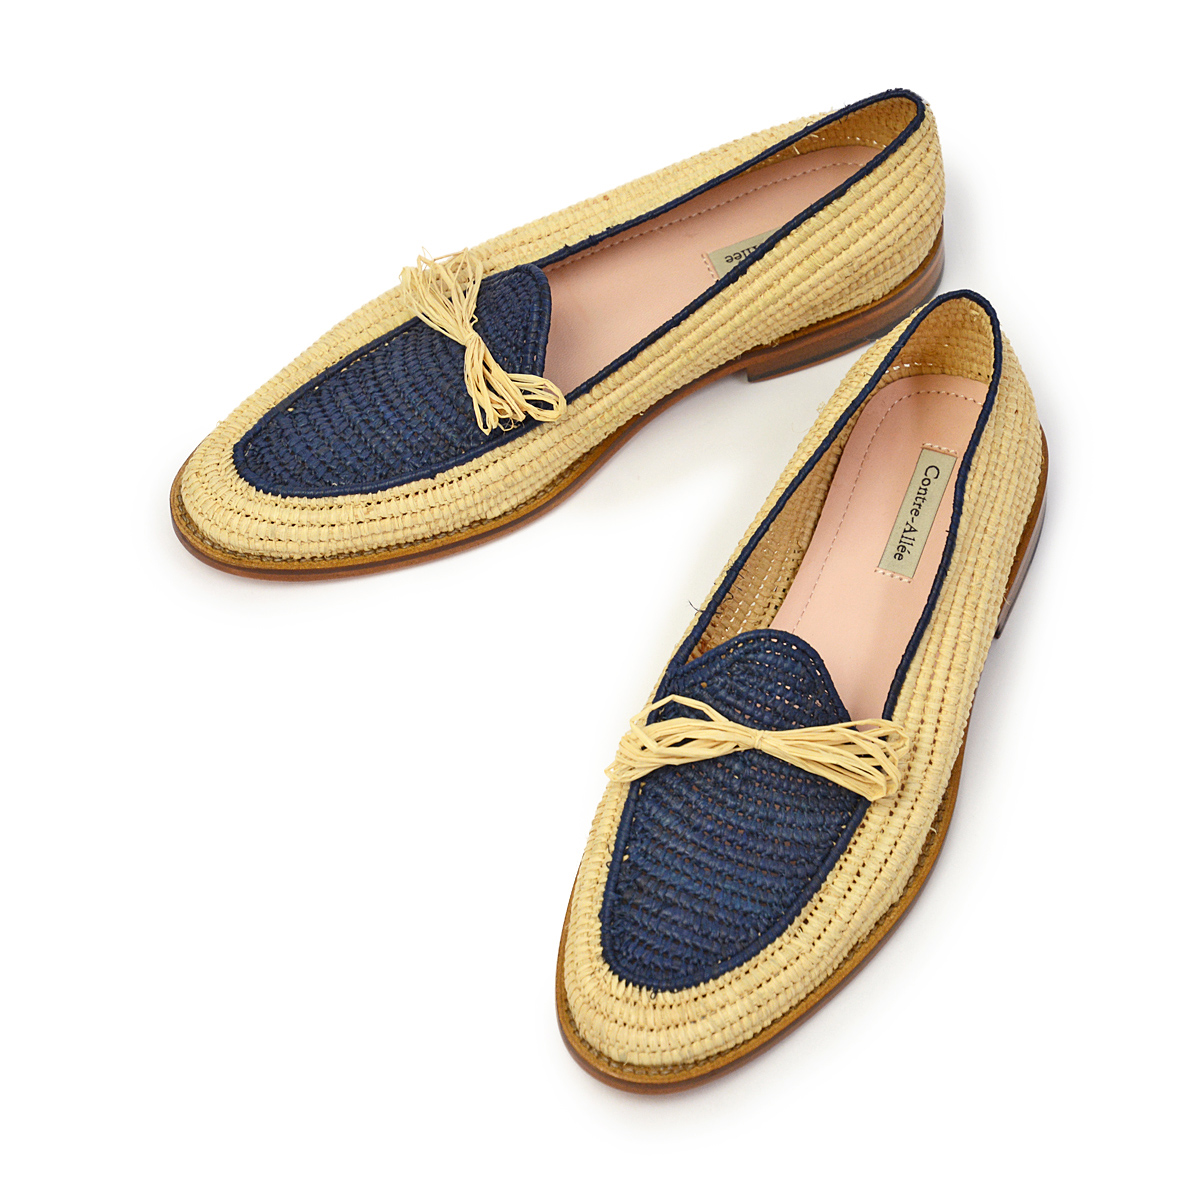 Contre-Allee【コントレアリー】リボンローファー Souliers BERNOUSSI Natural×Navy ラフィア ネイビー